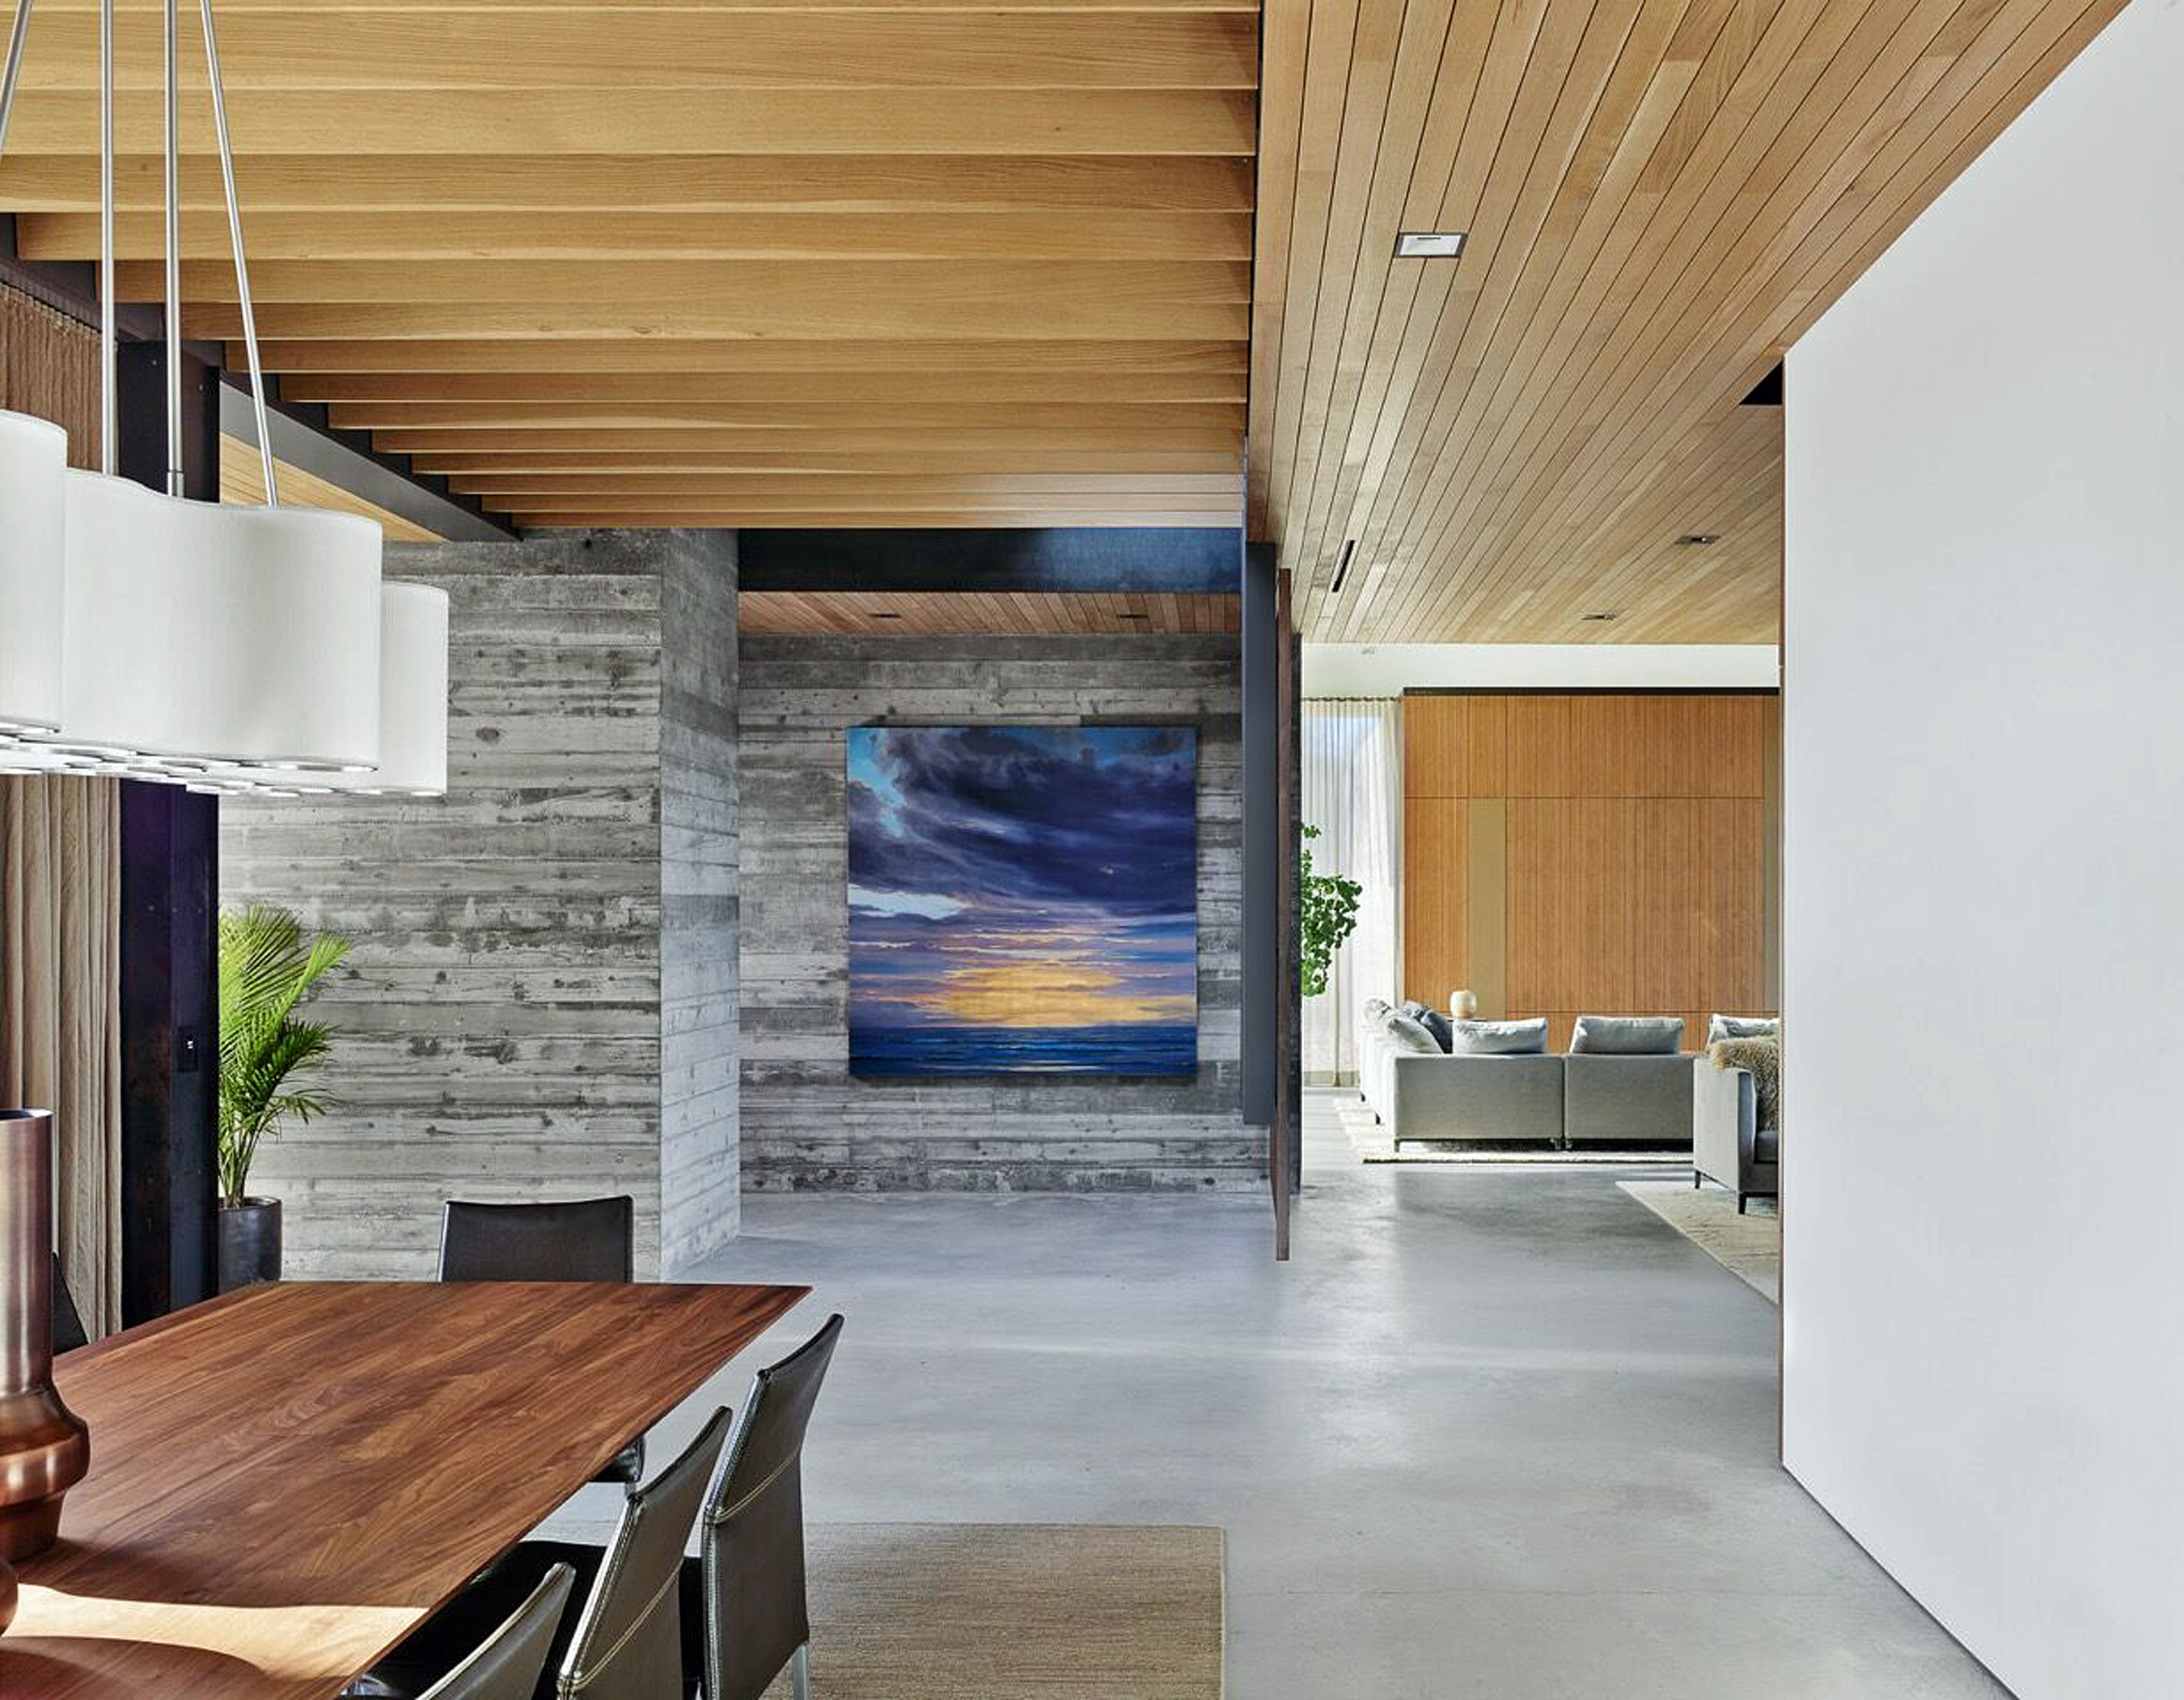 how to fix hardwood floor lifting of tips for building with board form concrete jlc online walls within tips for building with board form concrete jlc online walls decorative concrete concrete surfaces walls and ceilings